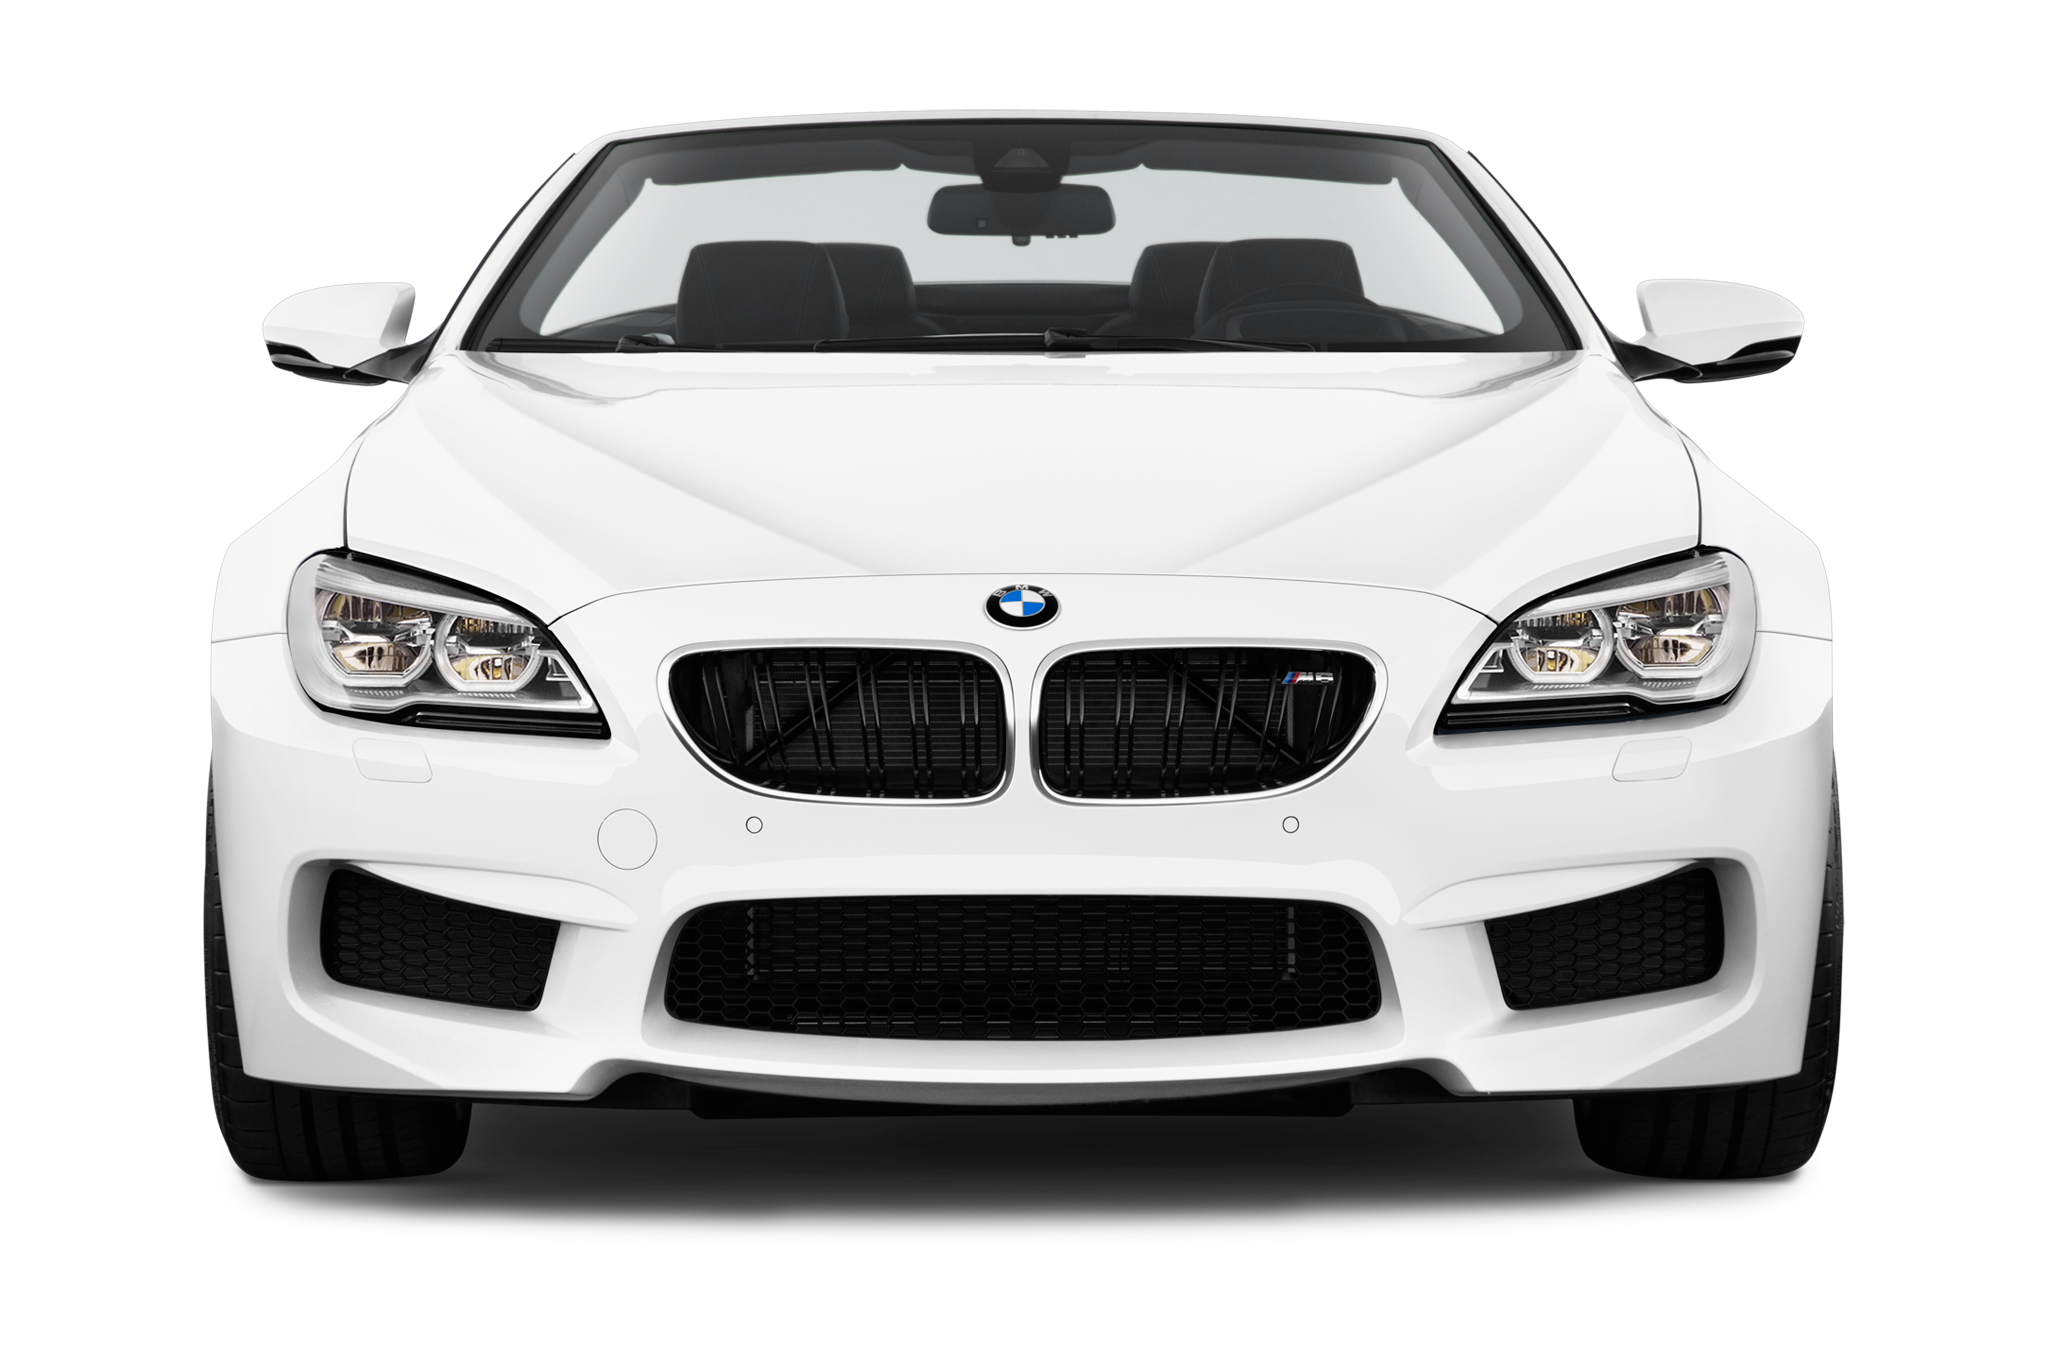 First Look: 2014 BMW M6 Gran Coupe - Automobile Magazine